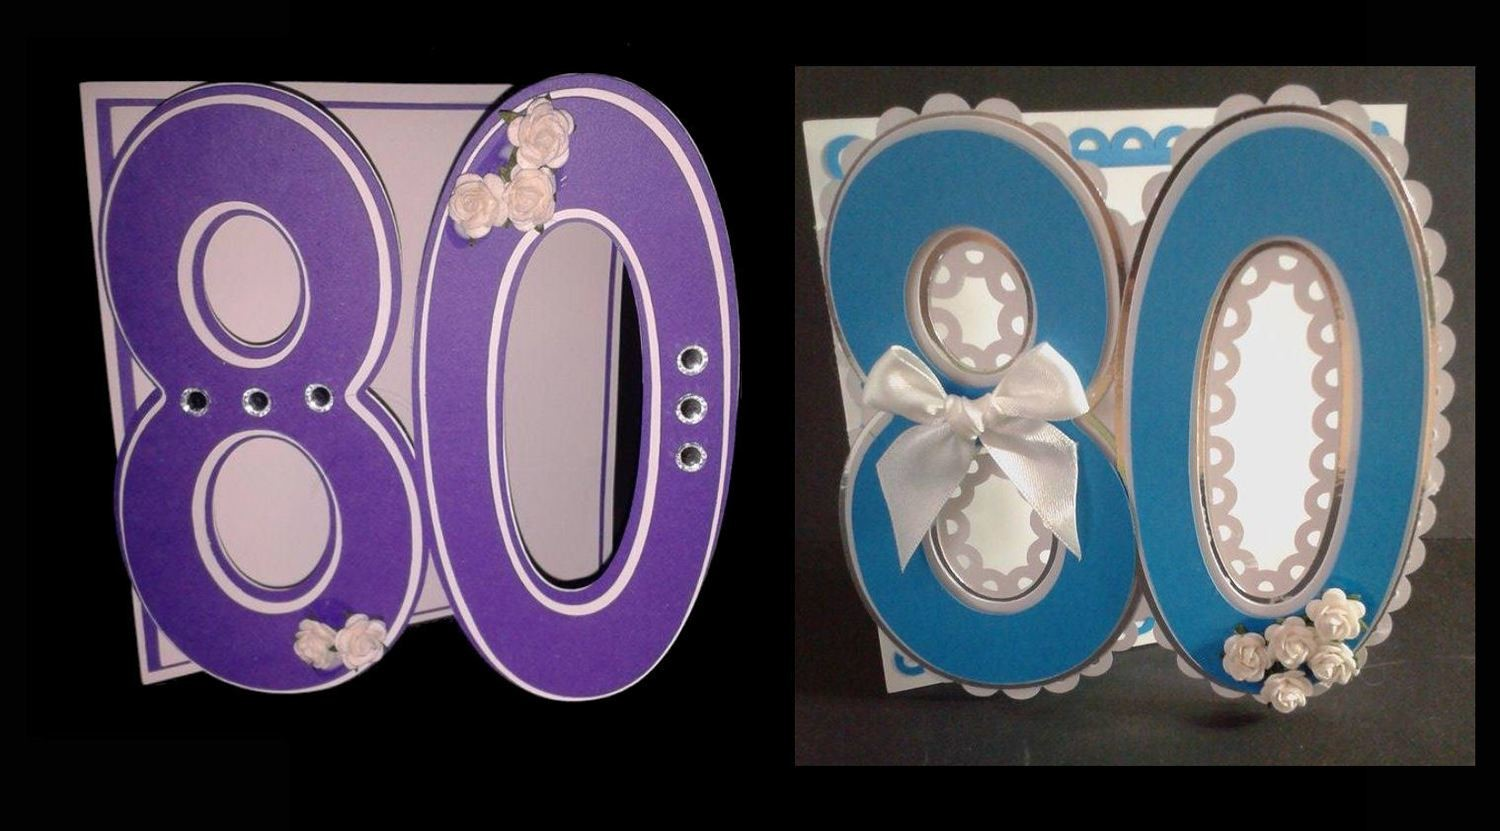 80th  Shaped Card Templates x 2 cards  (with layering)